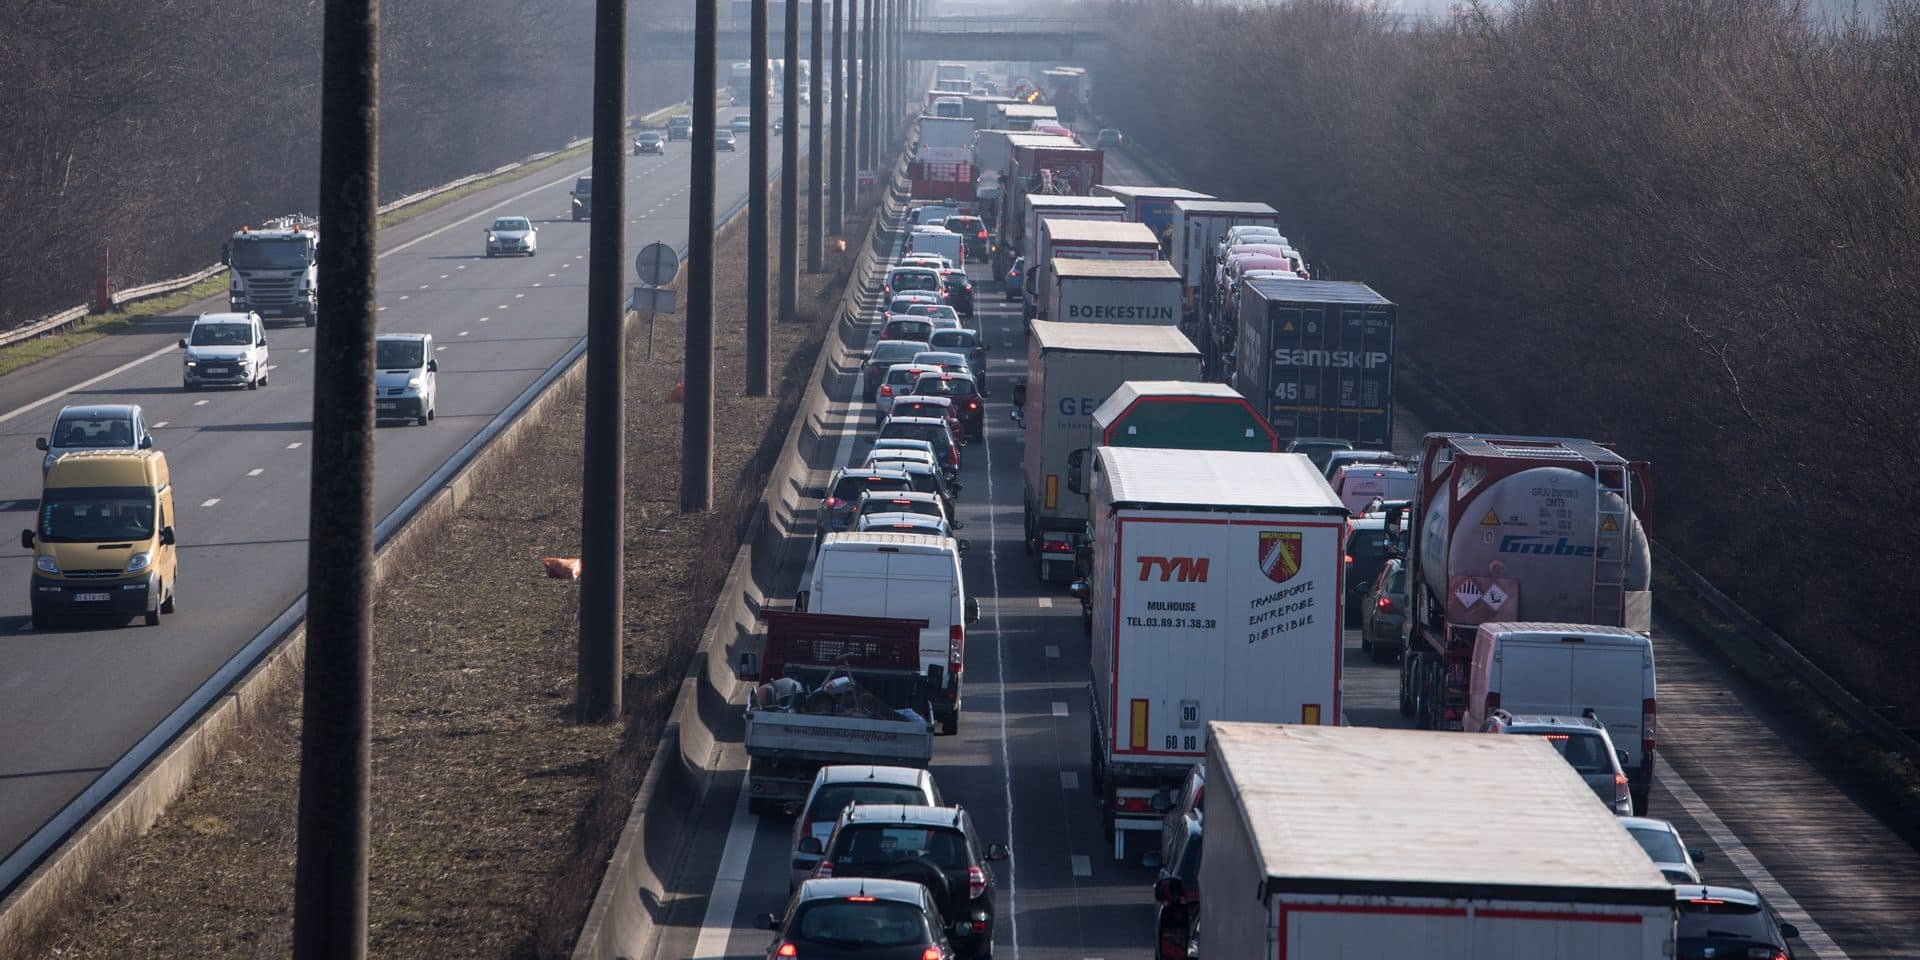 E19 : Un accident provoque 6km de files à hauteur de Houdeng-Goegnies